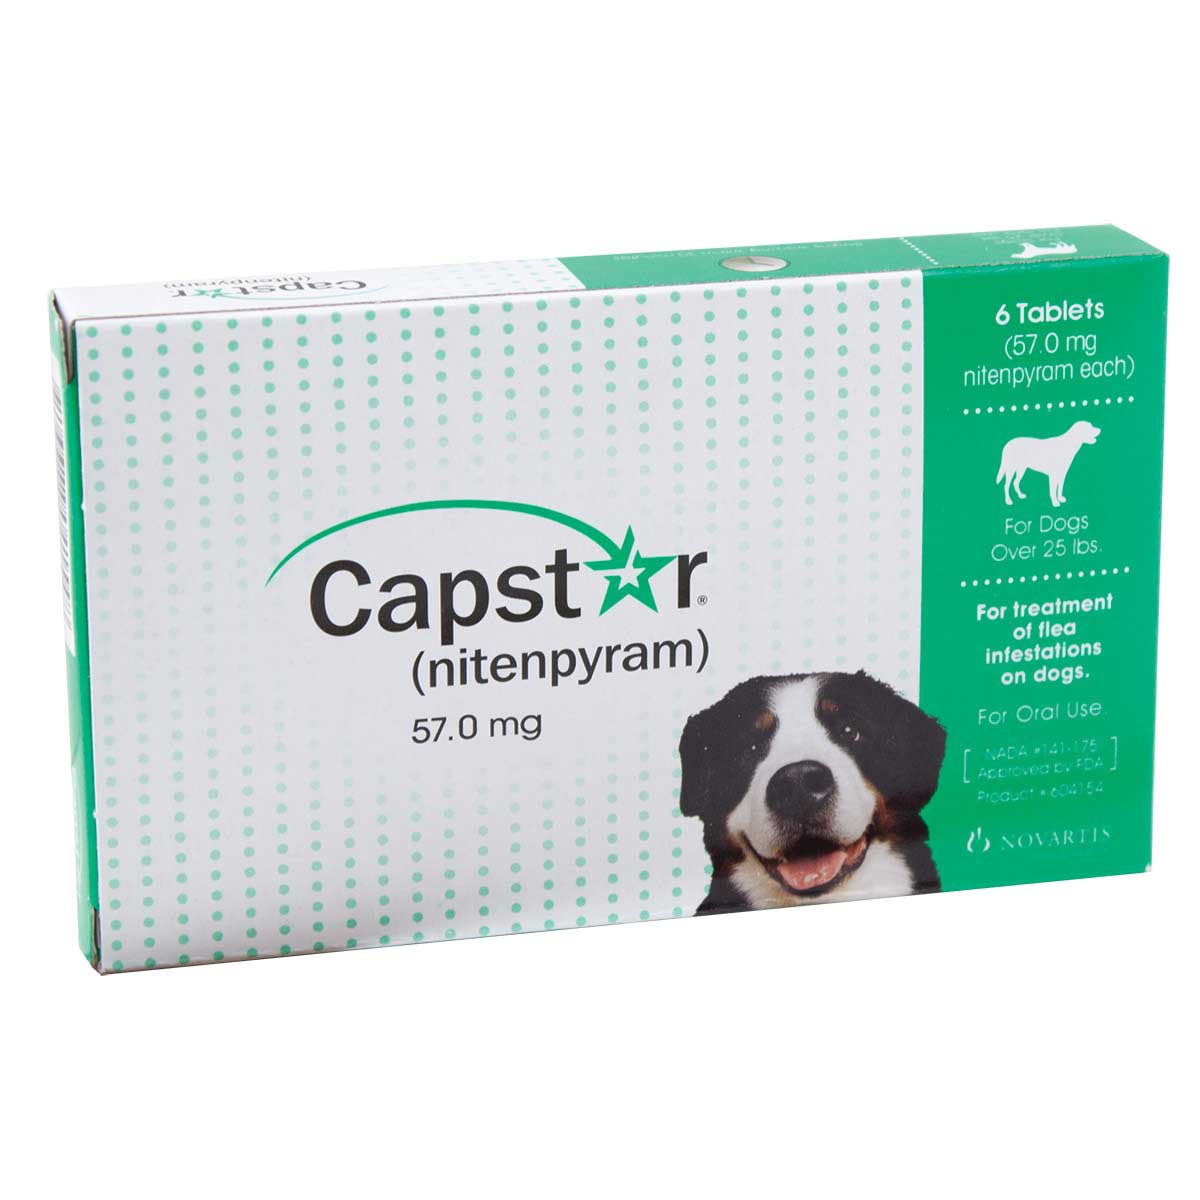 Novartis Capstar Large Dogs Over 25 lbs includes 6 Tablets